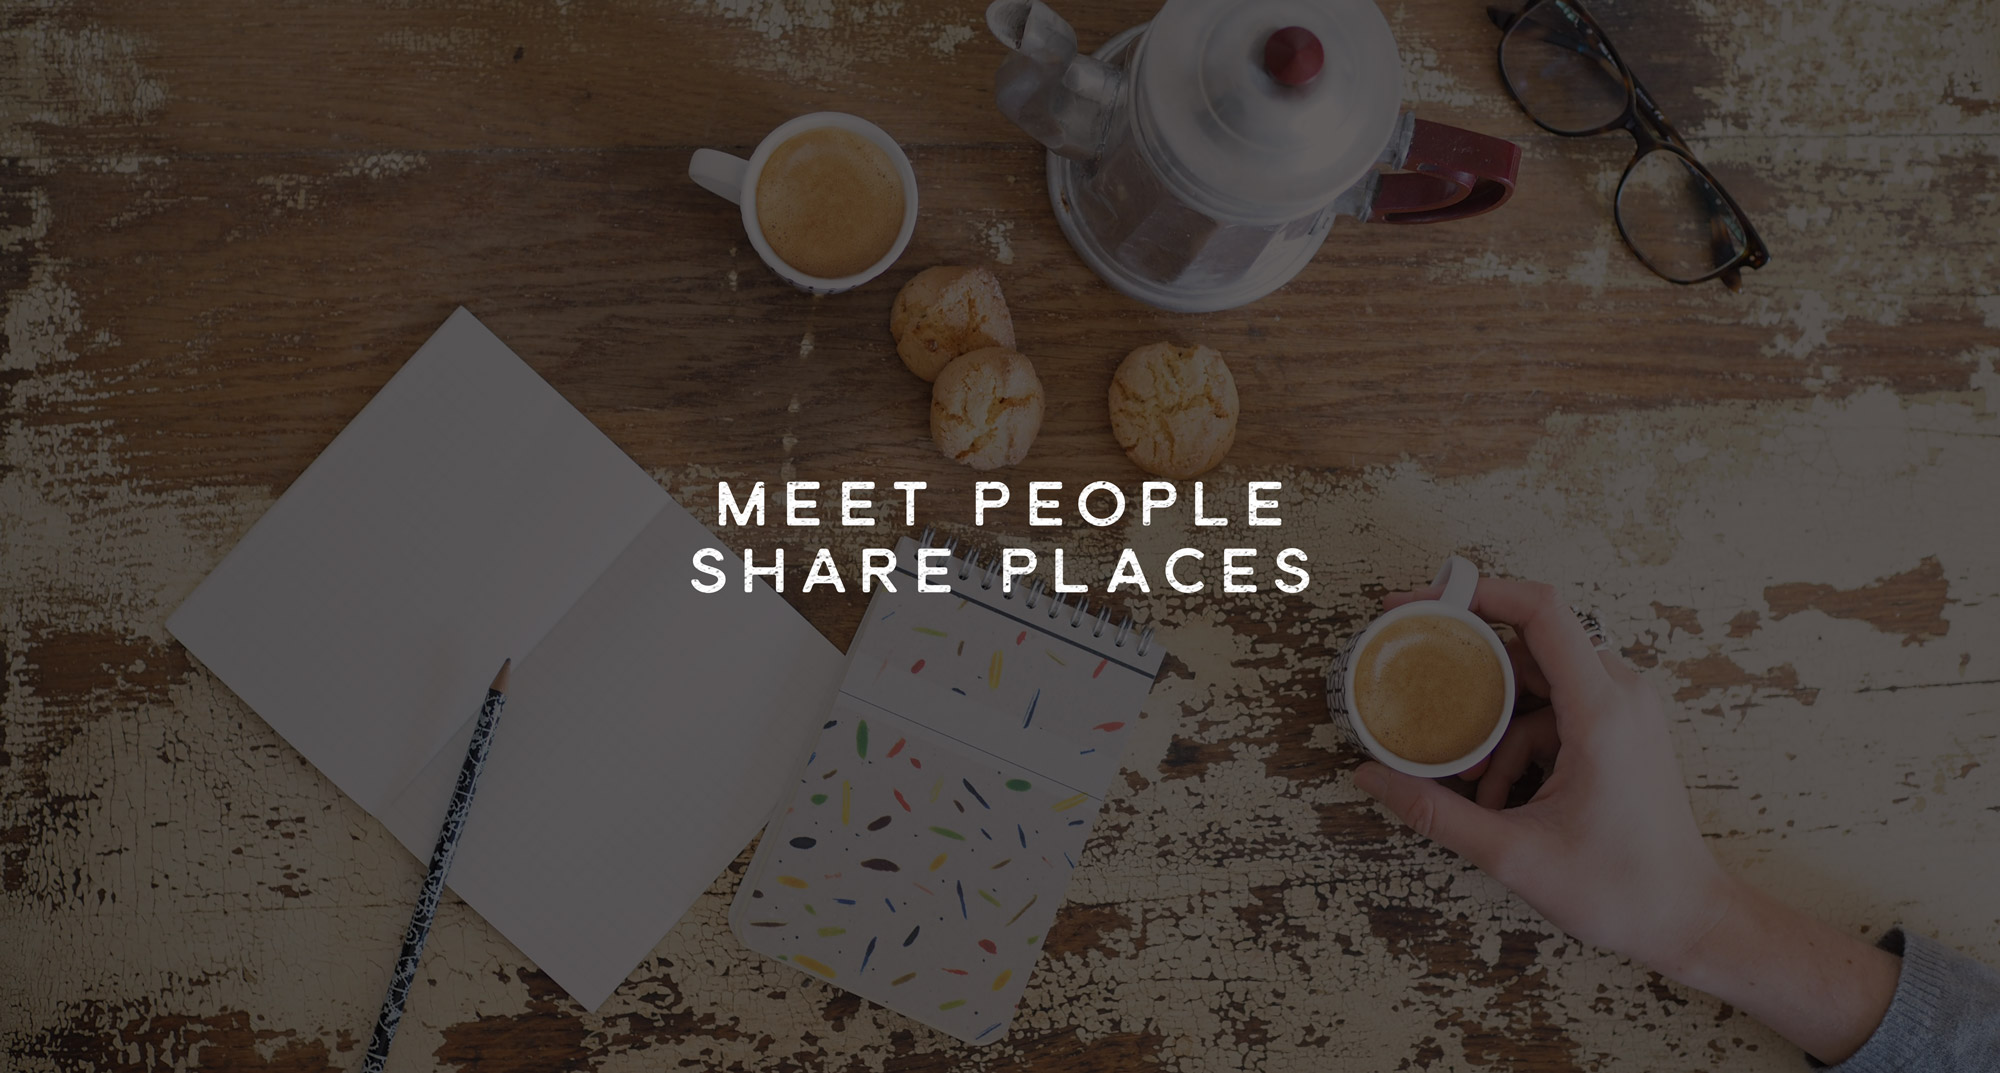 meet-people-share-places